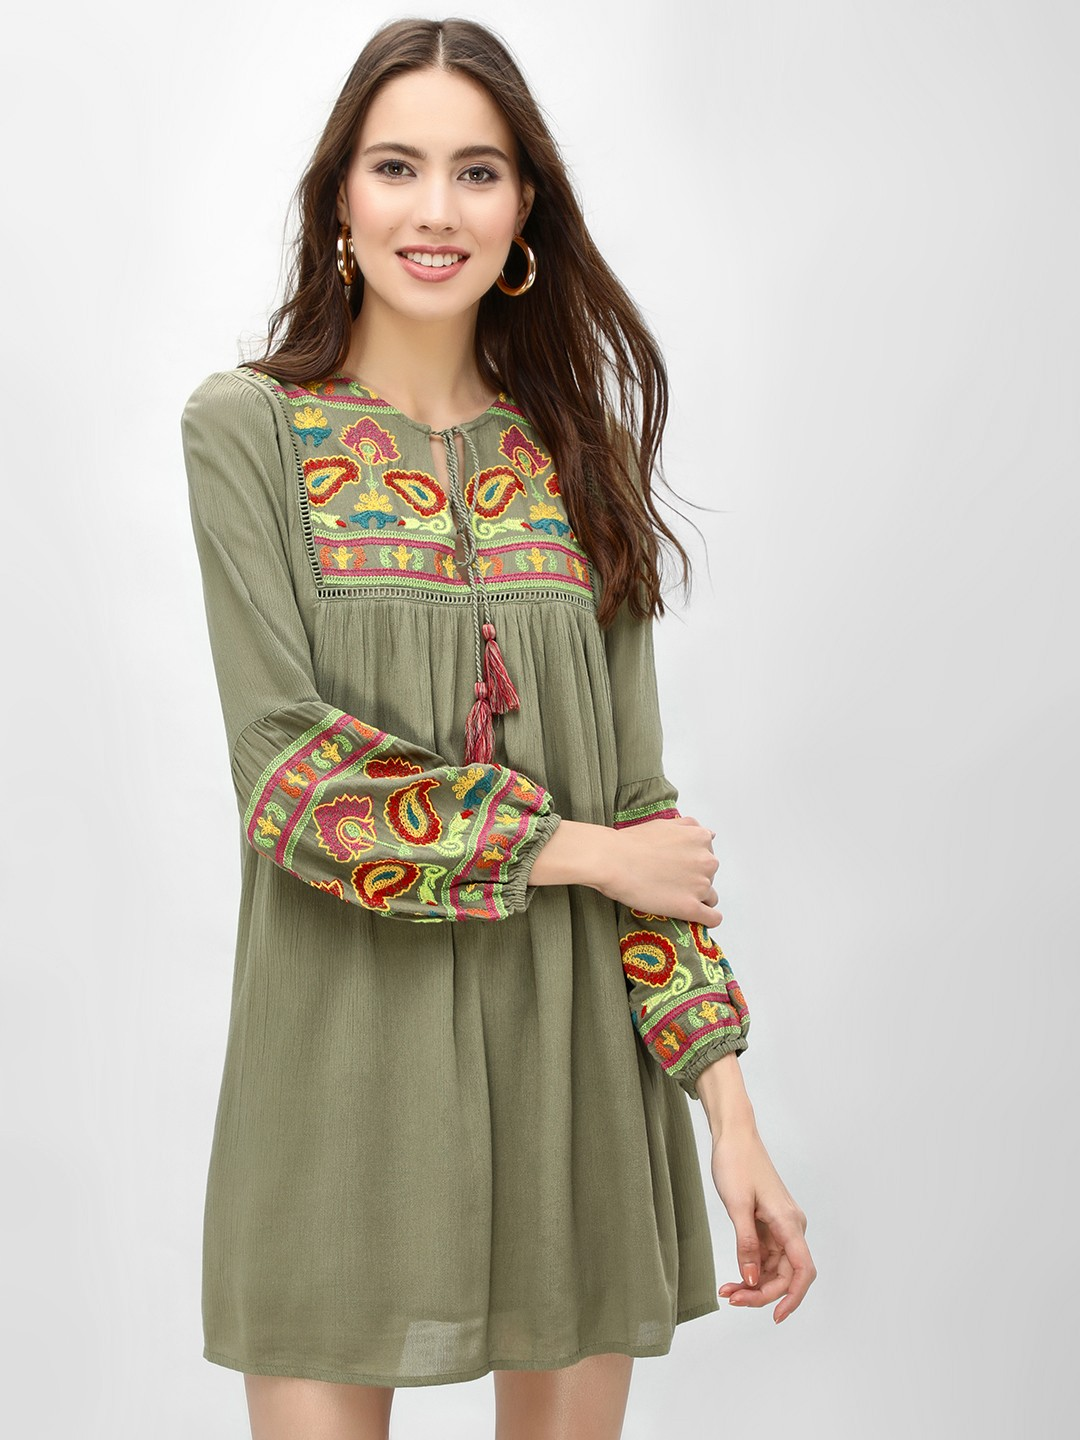 Rena Love Khakee Contrast Embroidered Shift Dress 1